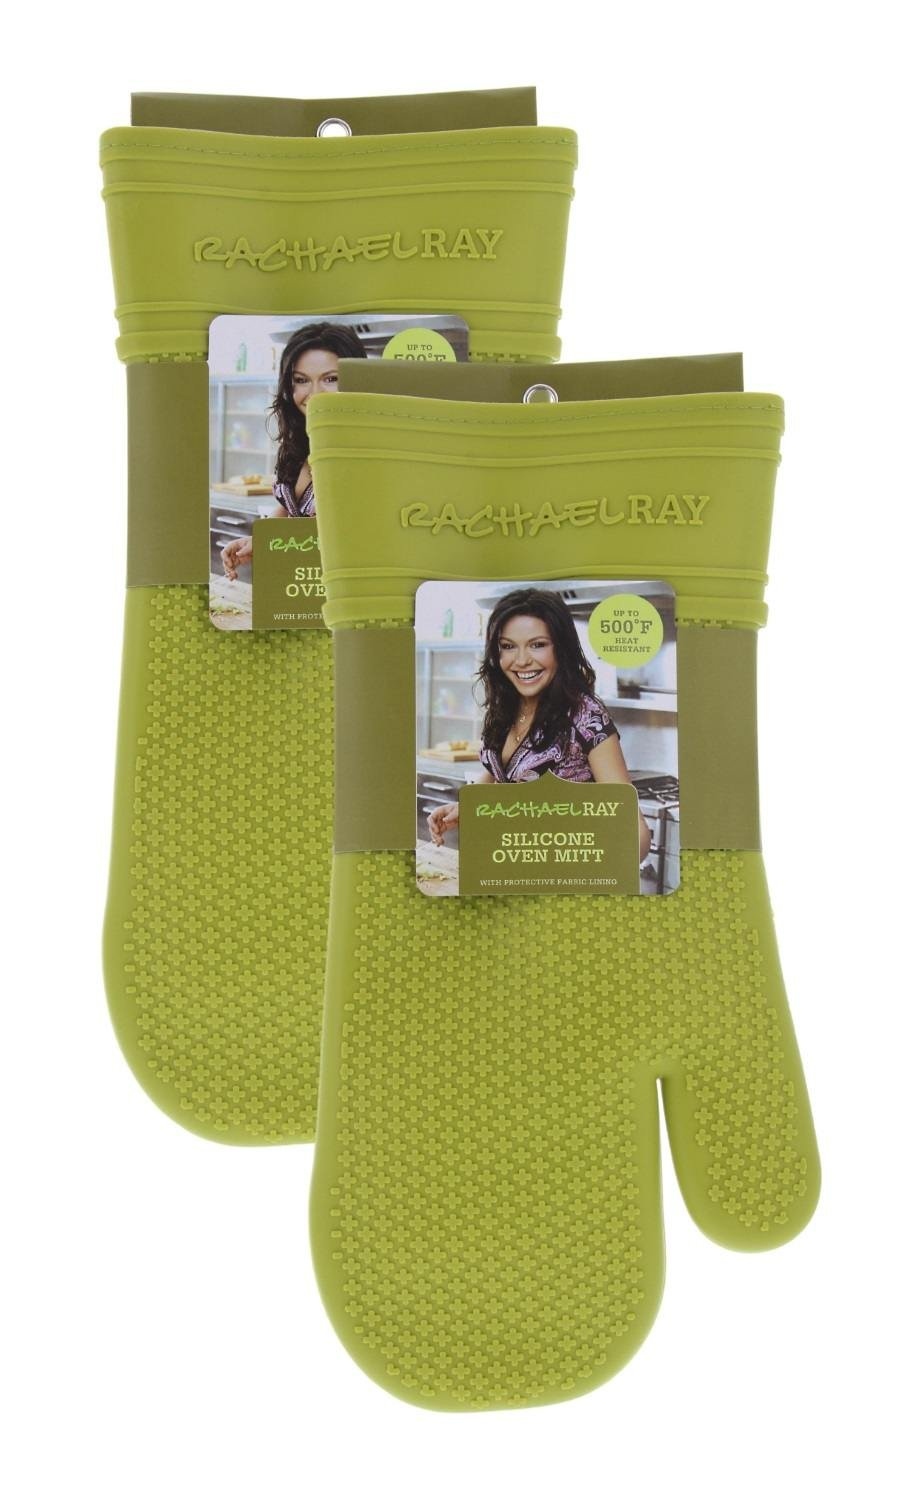 Rachael Ray Silicone Oven Mitt- Green AM6017